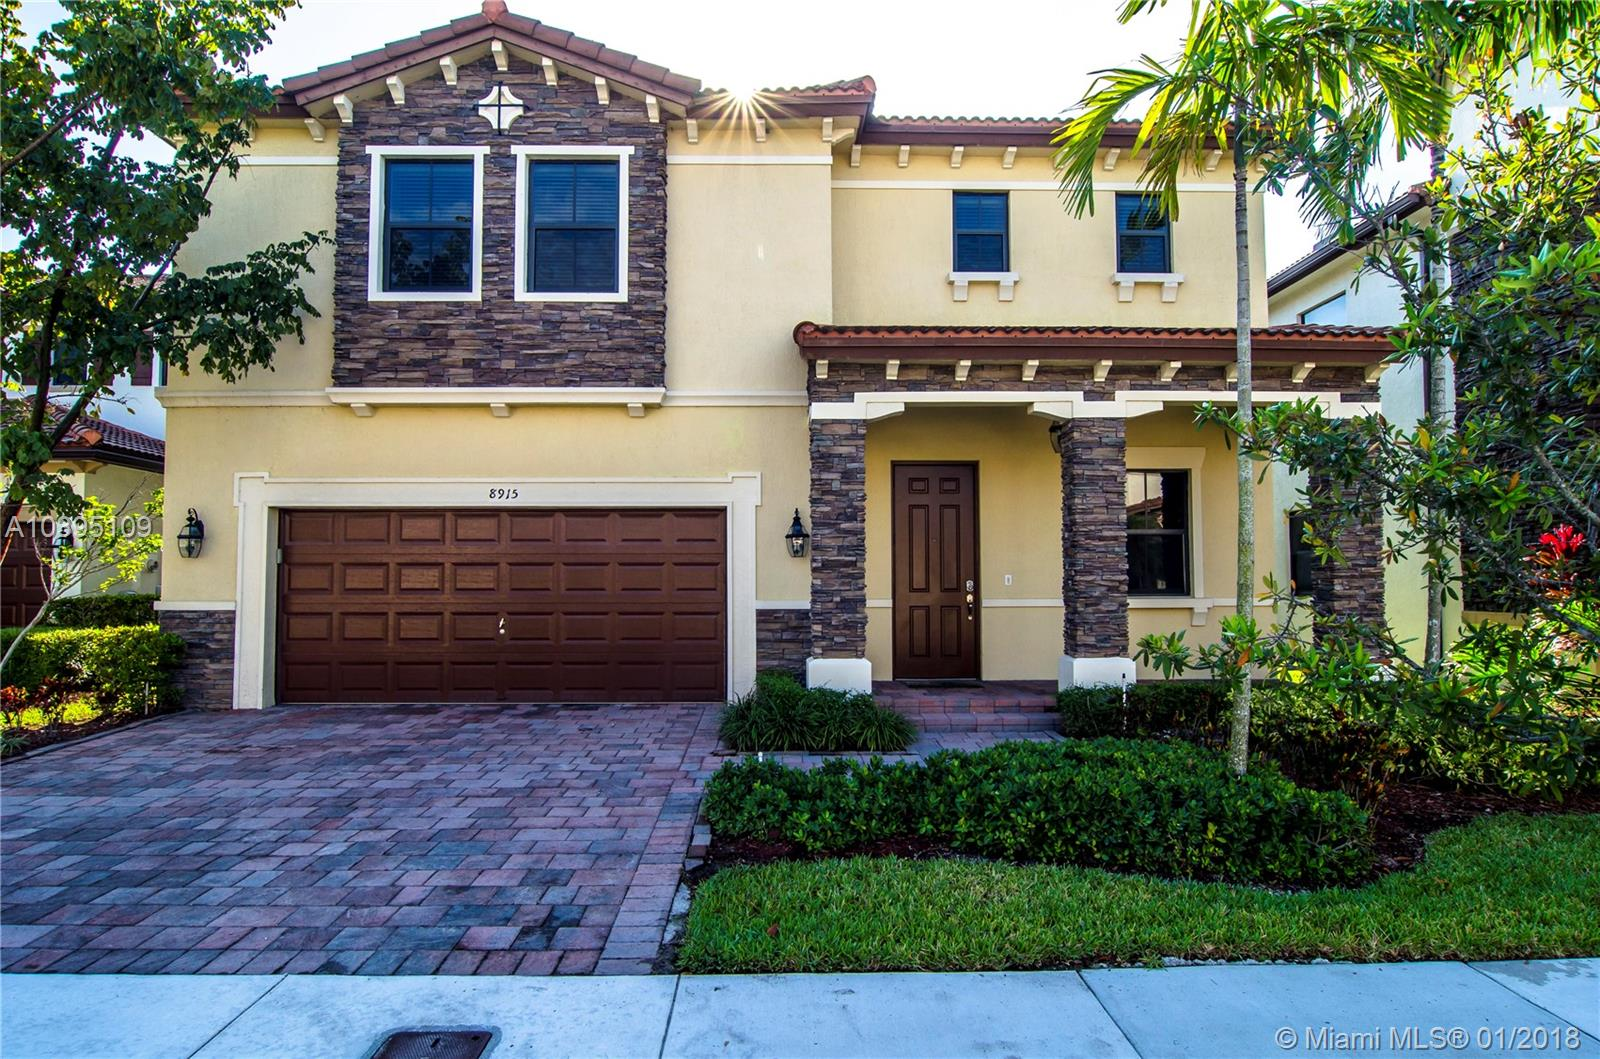 8915 Nw 99th Ave, Doral FL, 33178